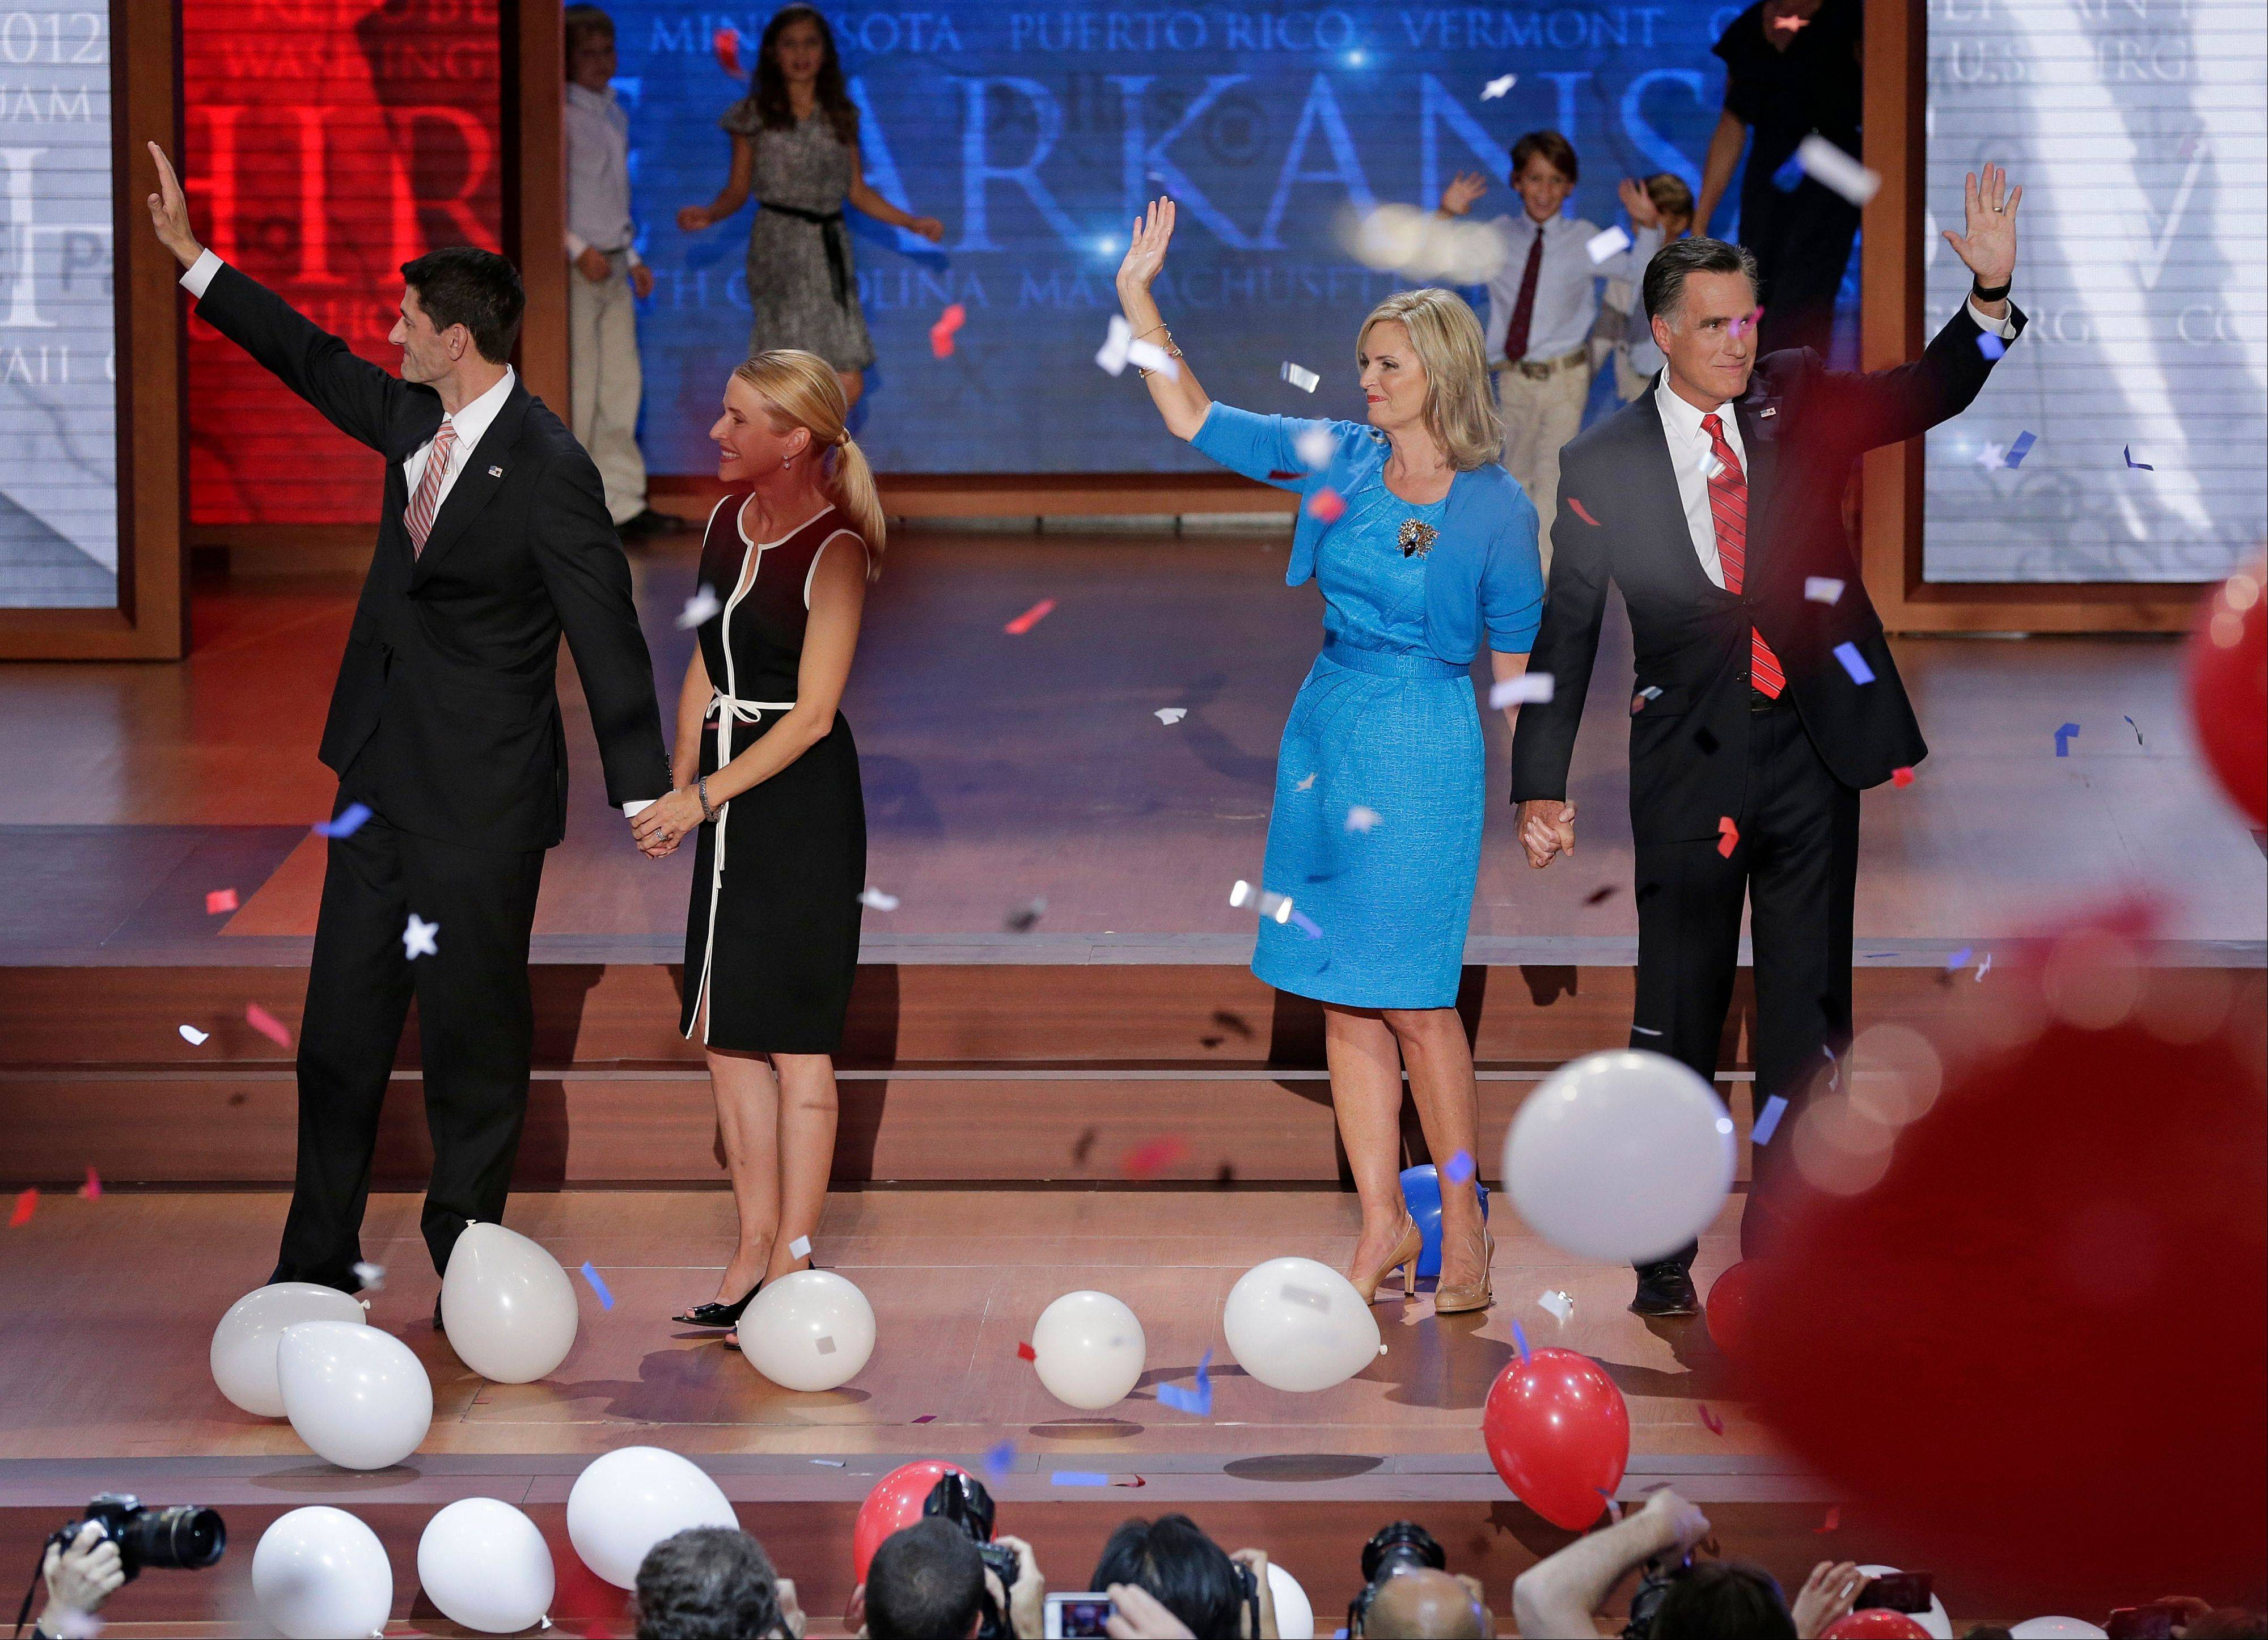 Republican vice presidential nominee, Rep. Paul Ryan, Janna Ryan, Ann Romney and Republican presidential nominee Mitt Romney wave to the delegates during the Republican National Convention in Tampa, Fla., on Thursday, Aug. 30, 2012.